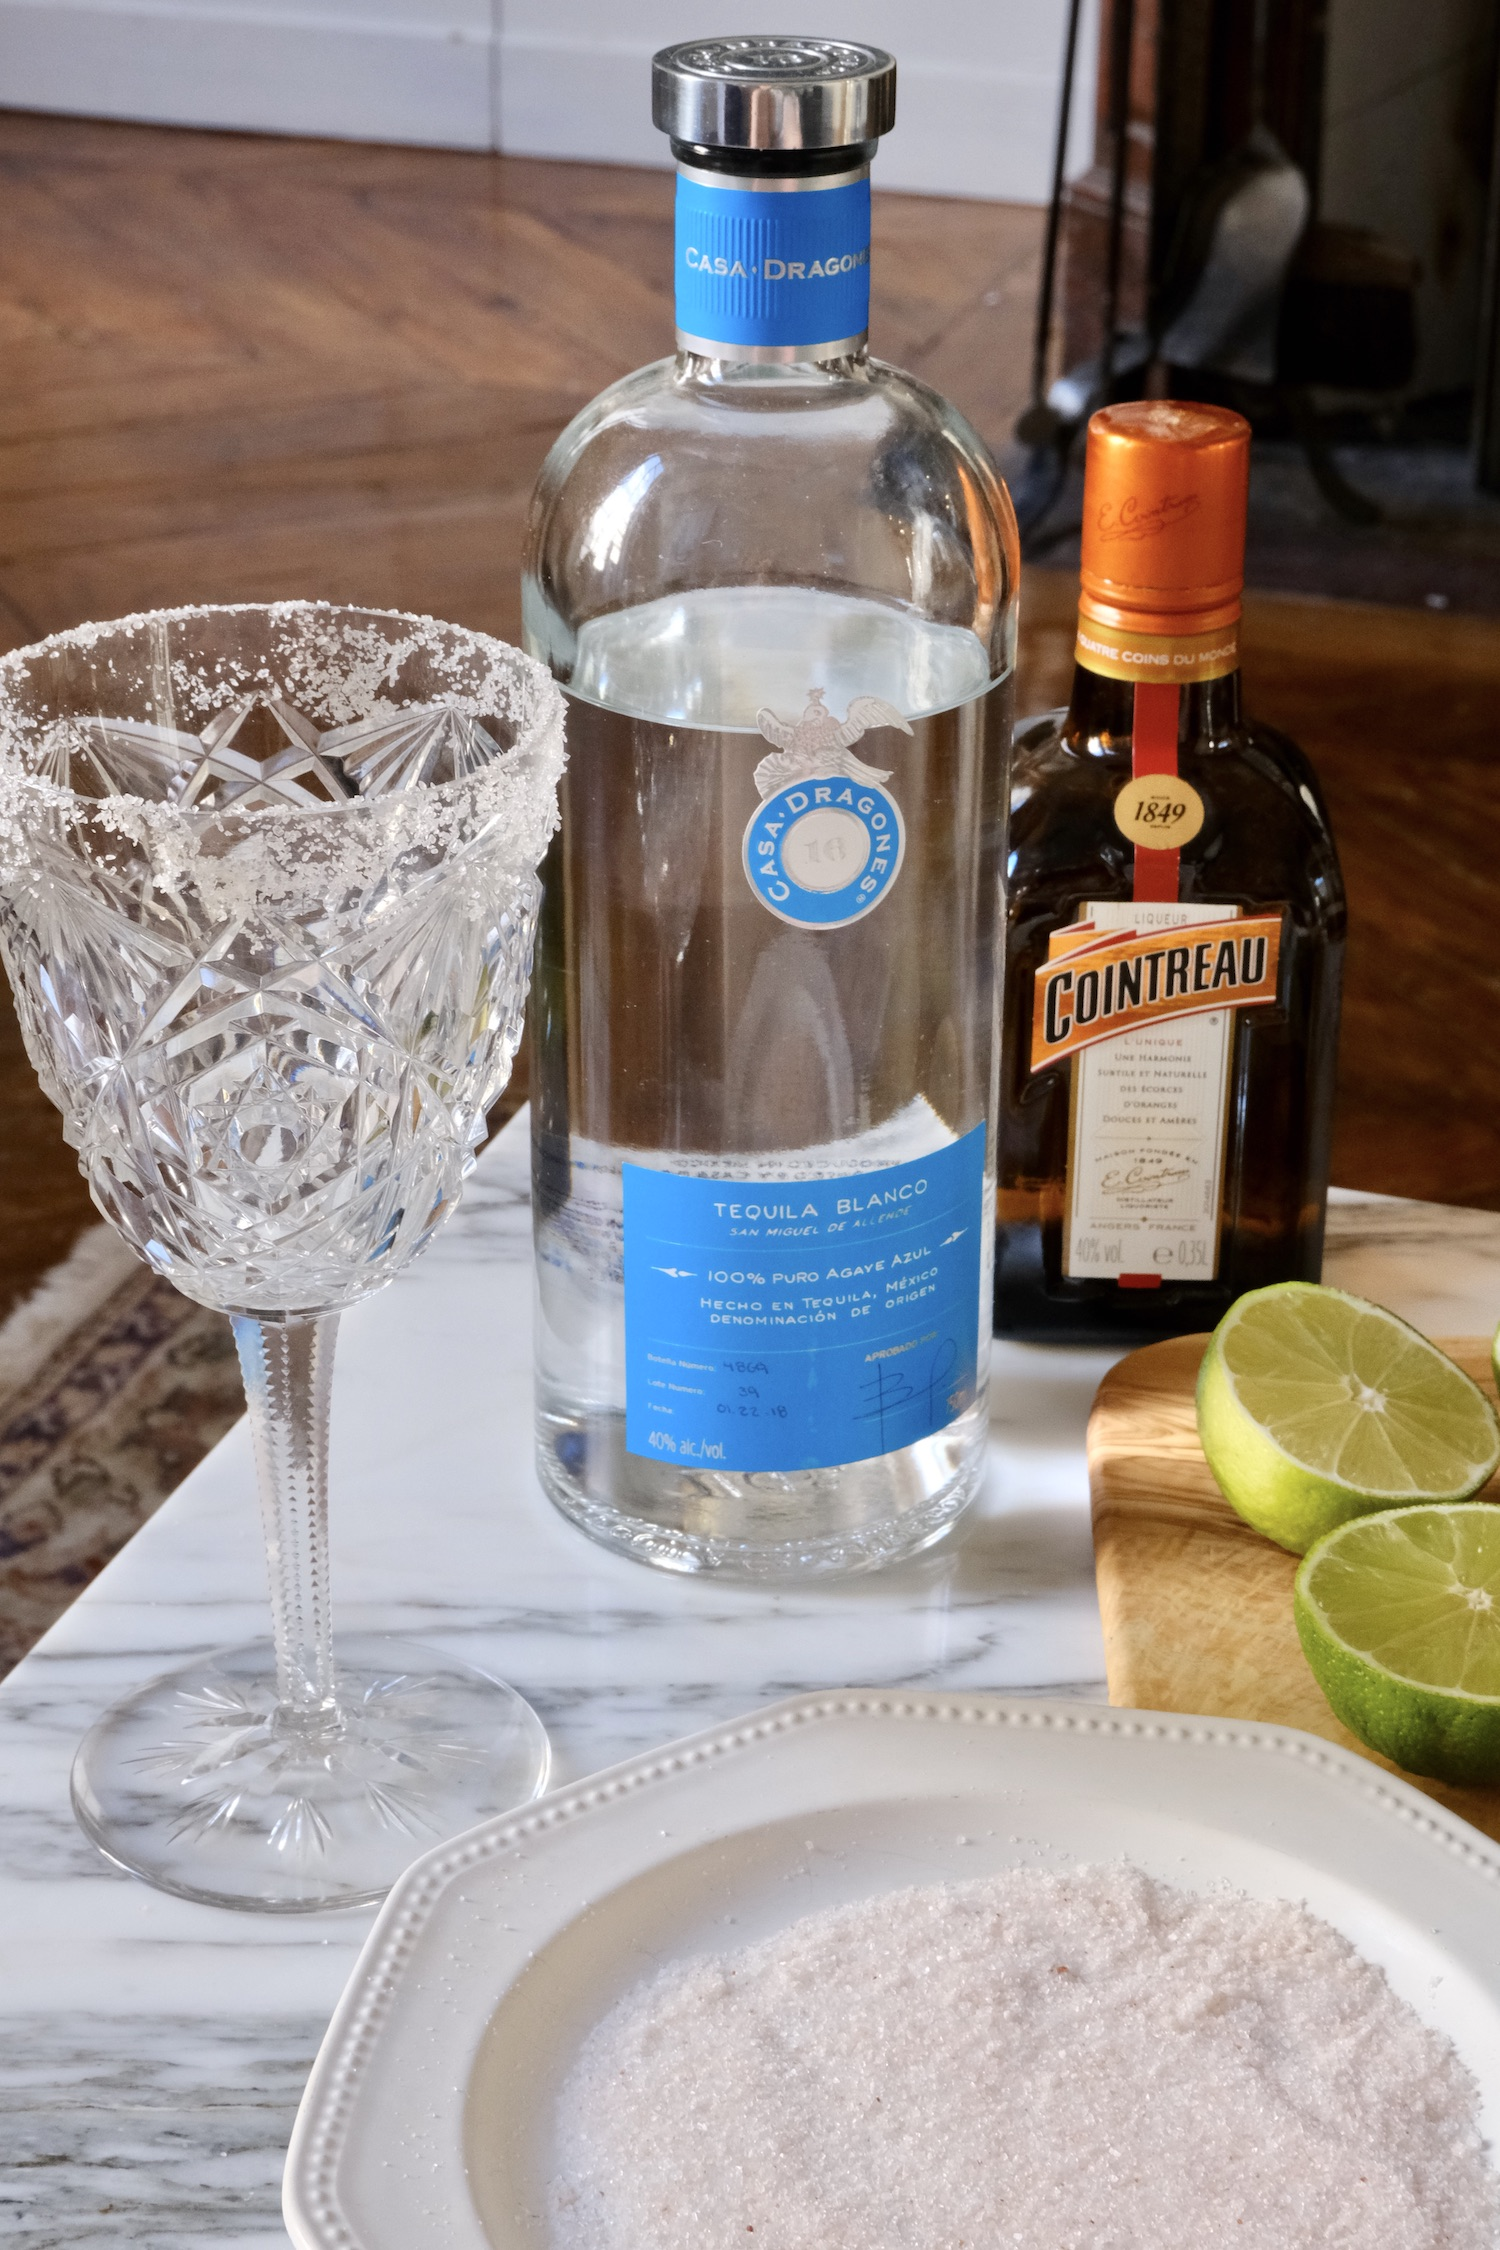 Casa Dragones Margarita with a Baccarat glass from 1937 inspired by Martha Stewart's Martha-ritas recipe